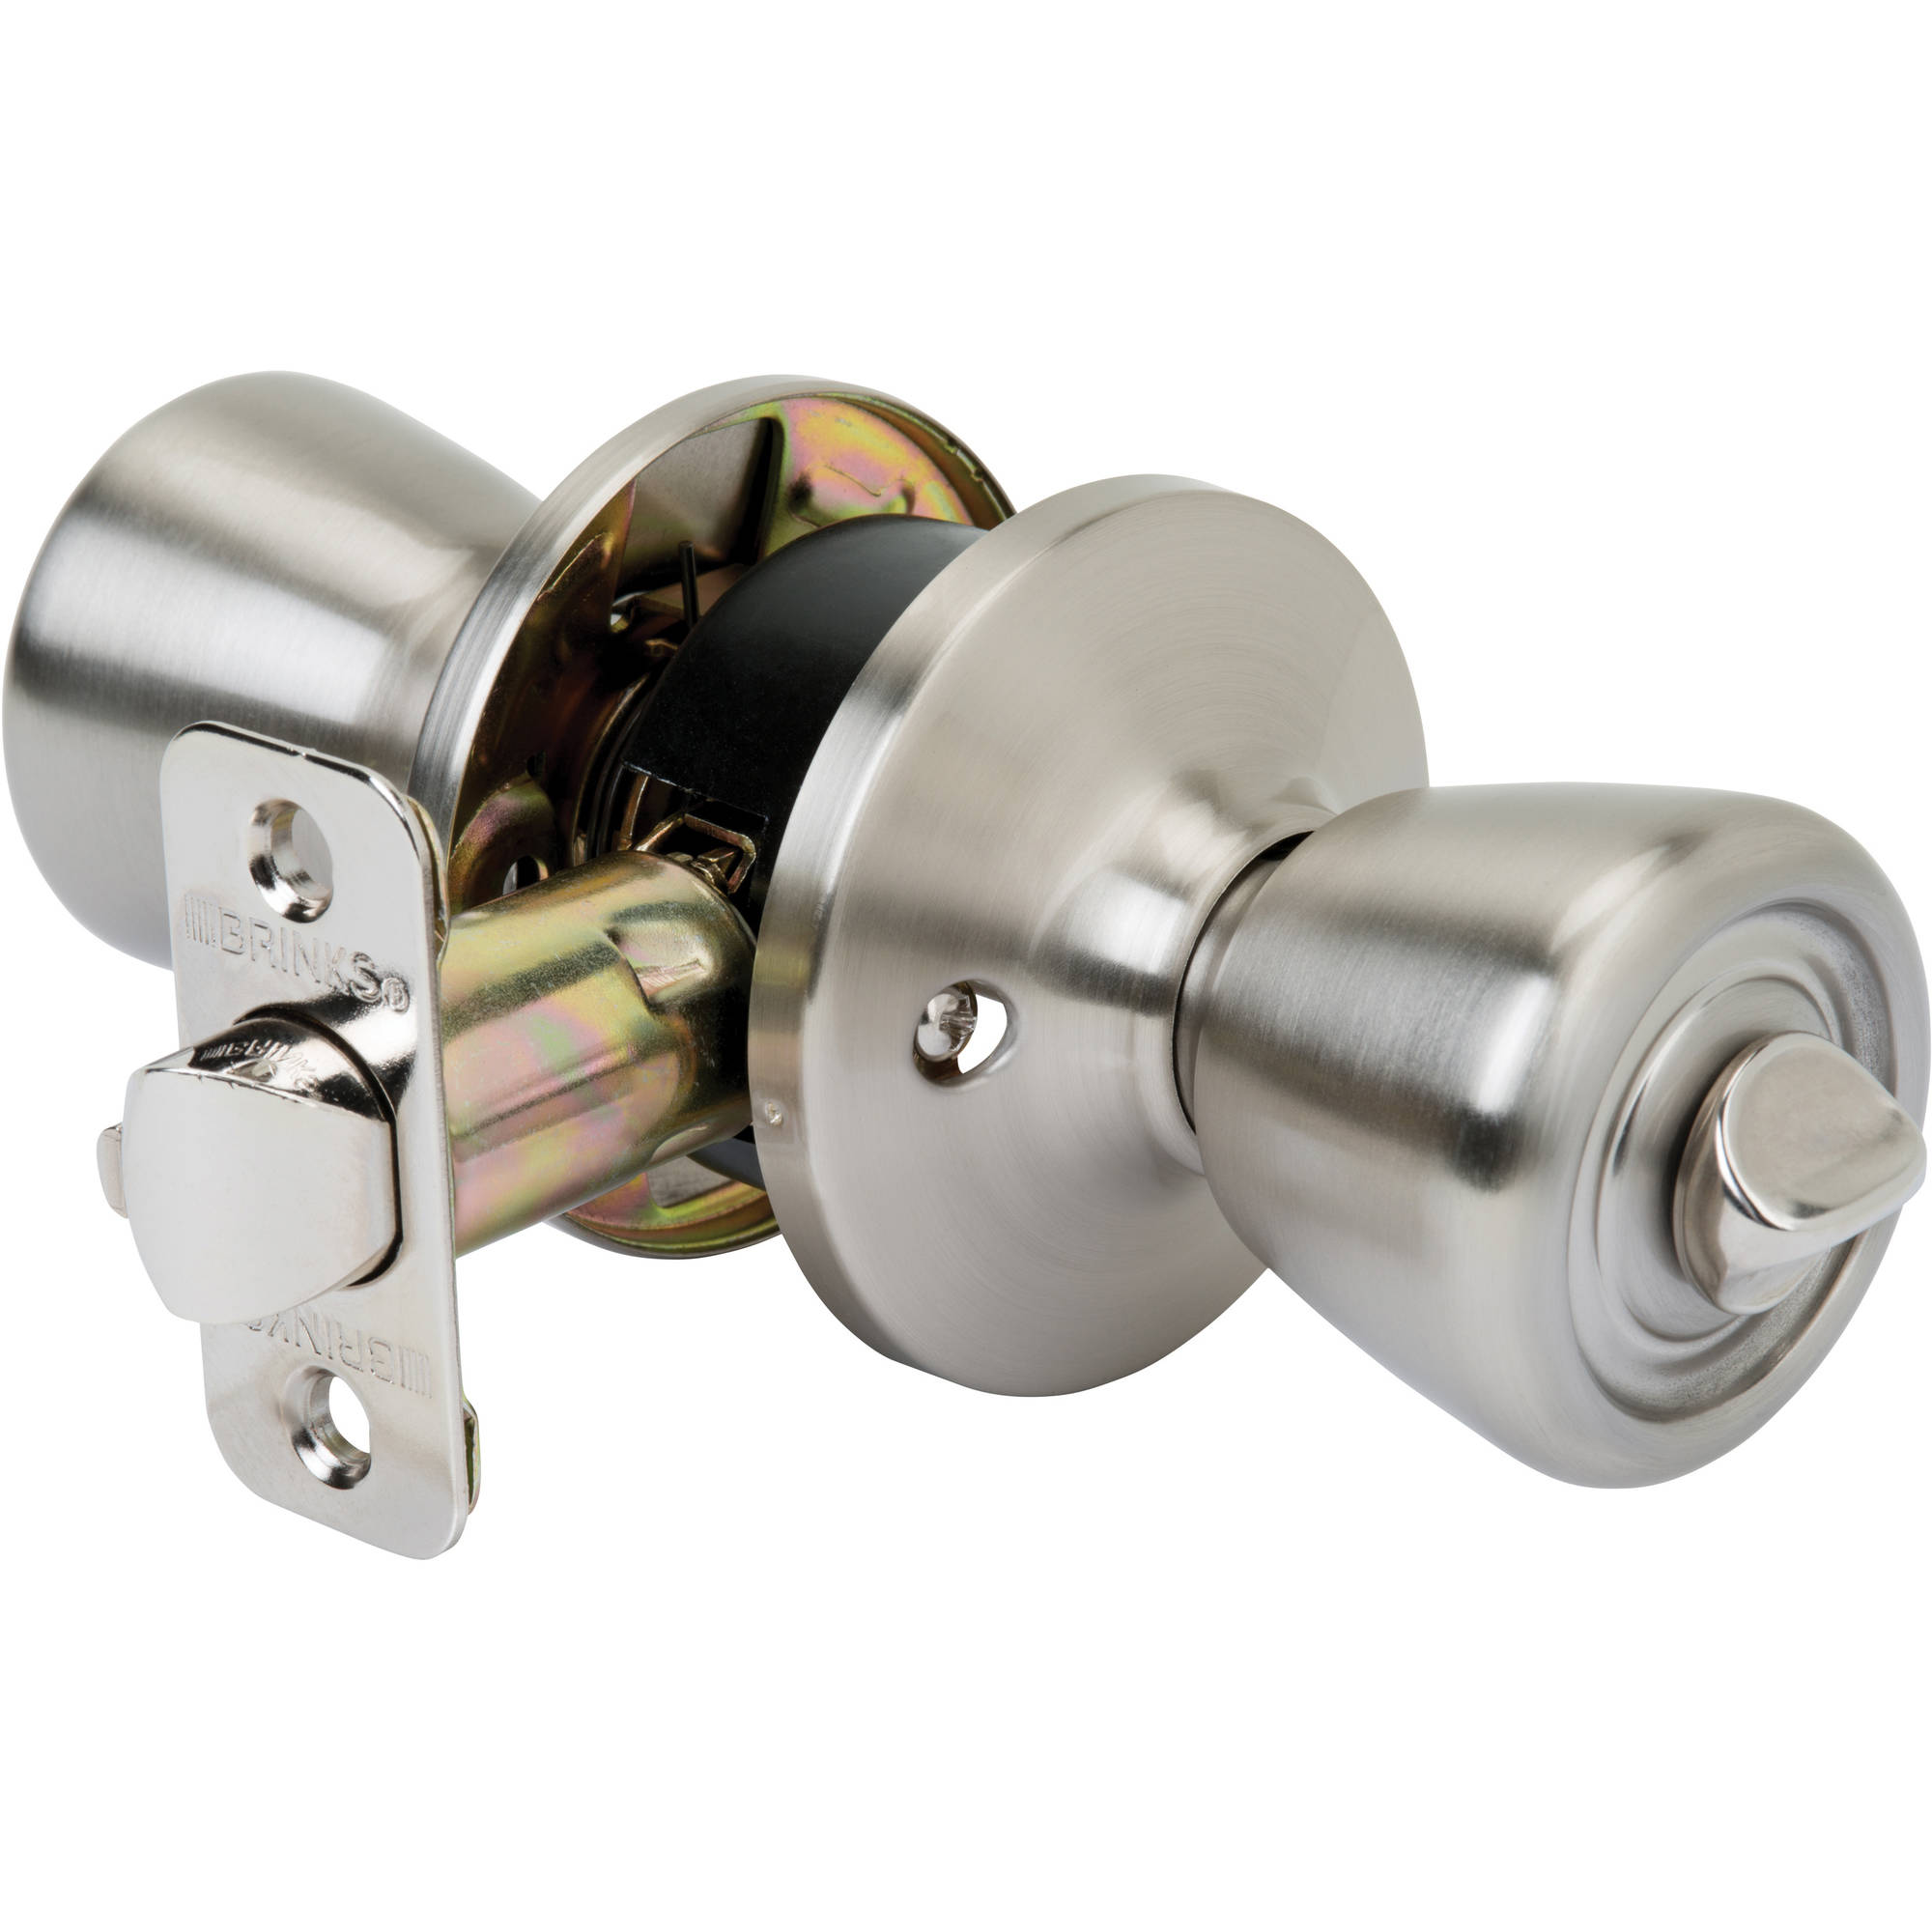 Bathroom Door Knobs With Locks My Web Value